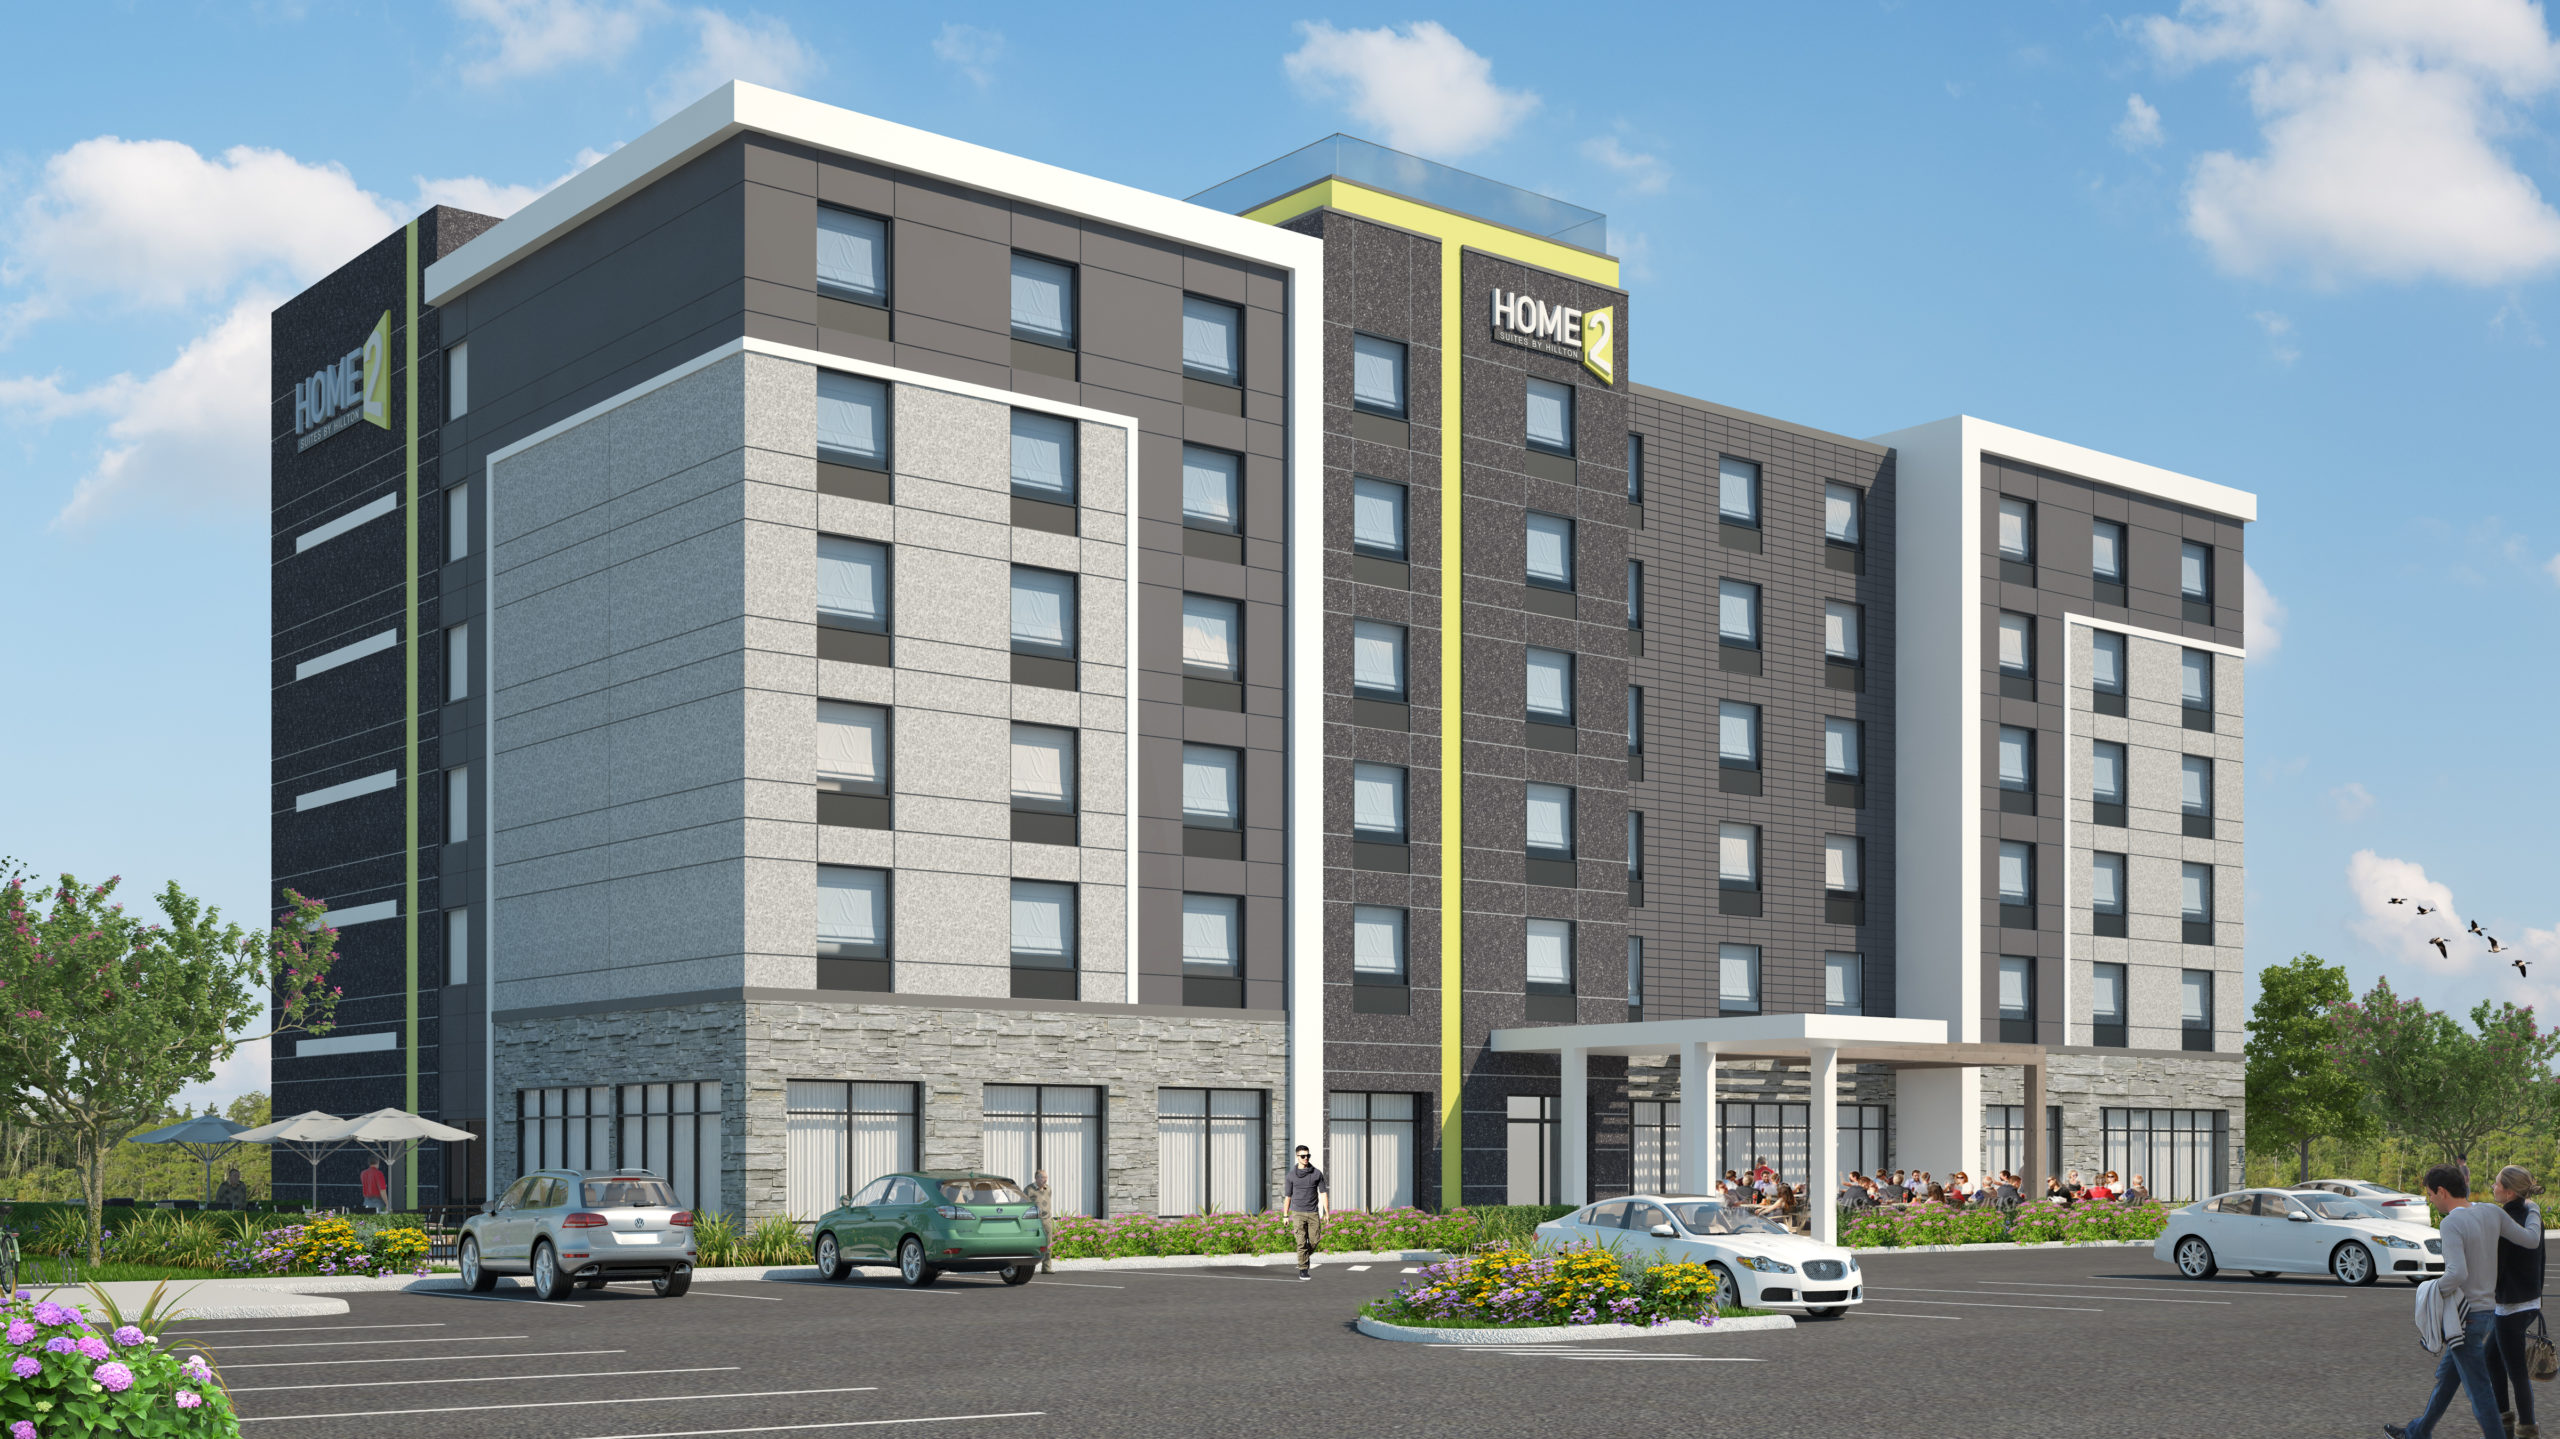 Thunder-Bay-Home2-Hotel-Render-Update-19-06-03-18-029